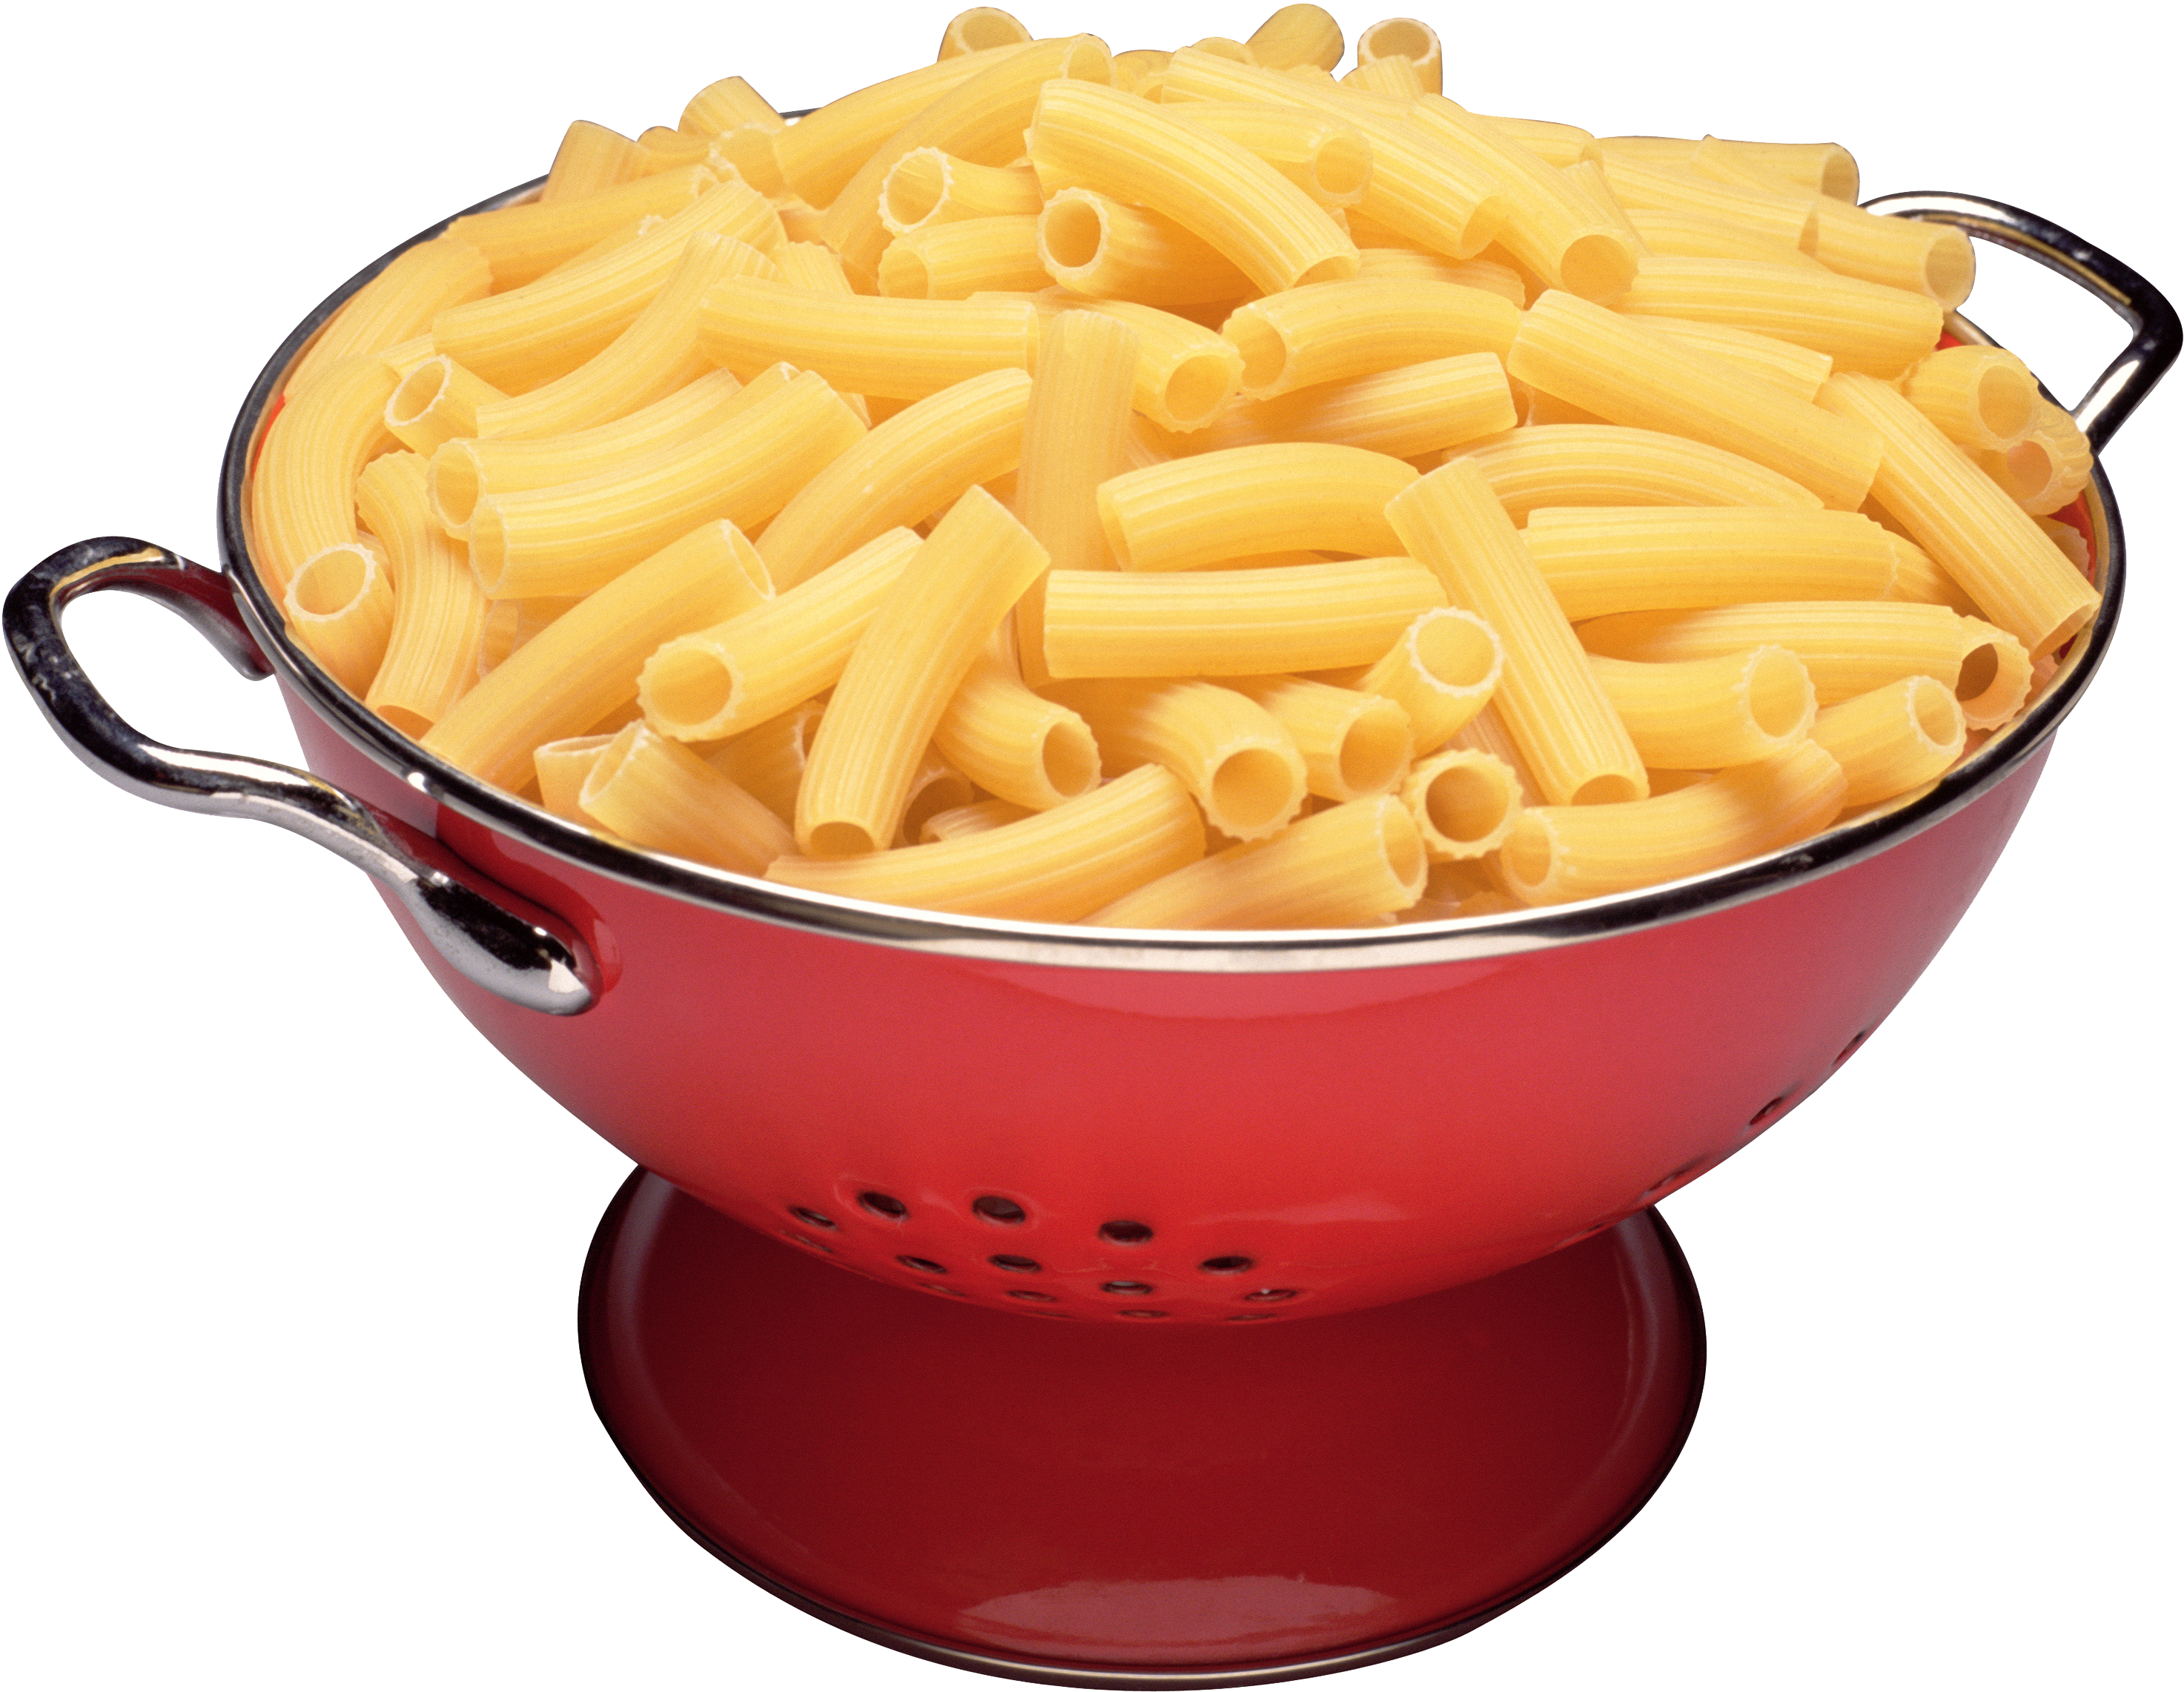 Pasta clipart main dish. Png images free download